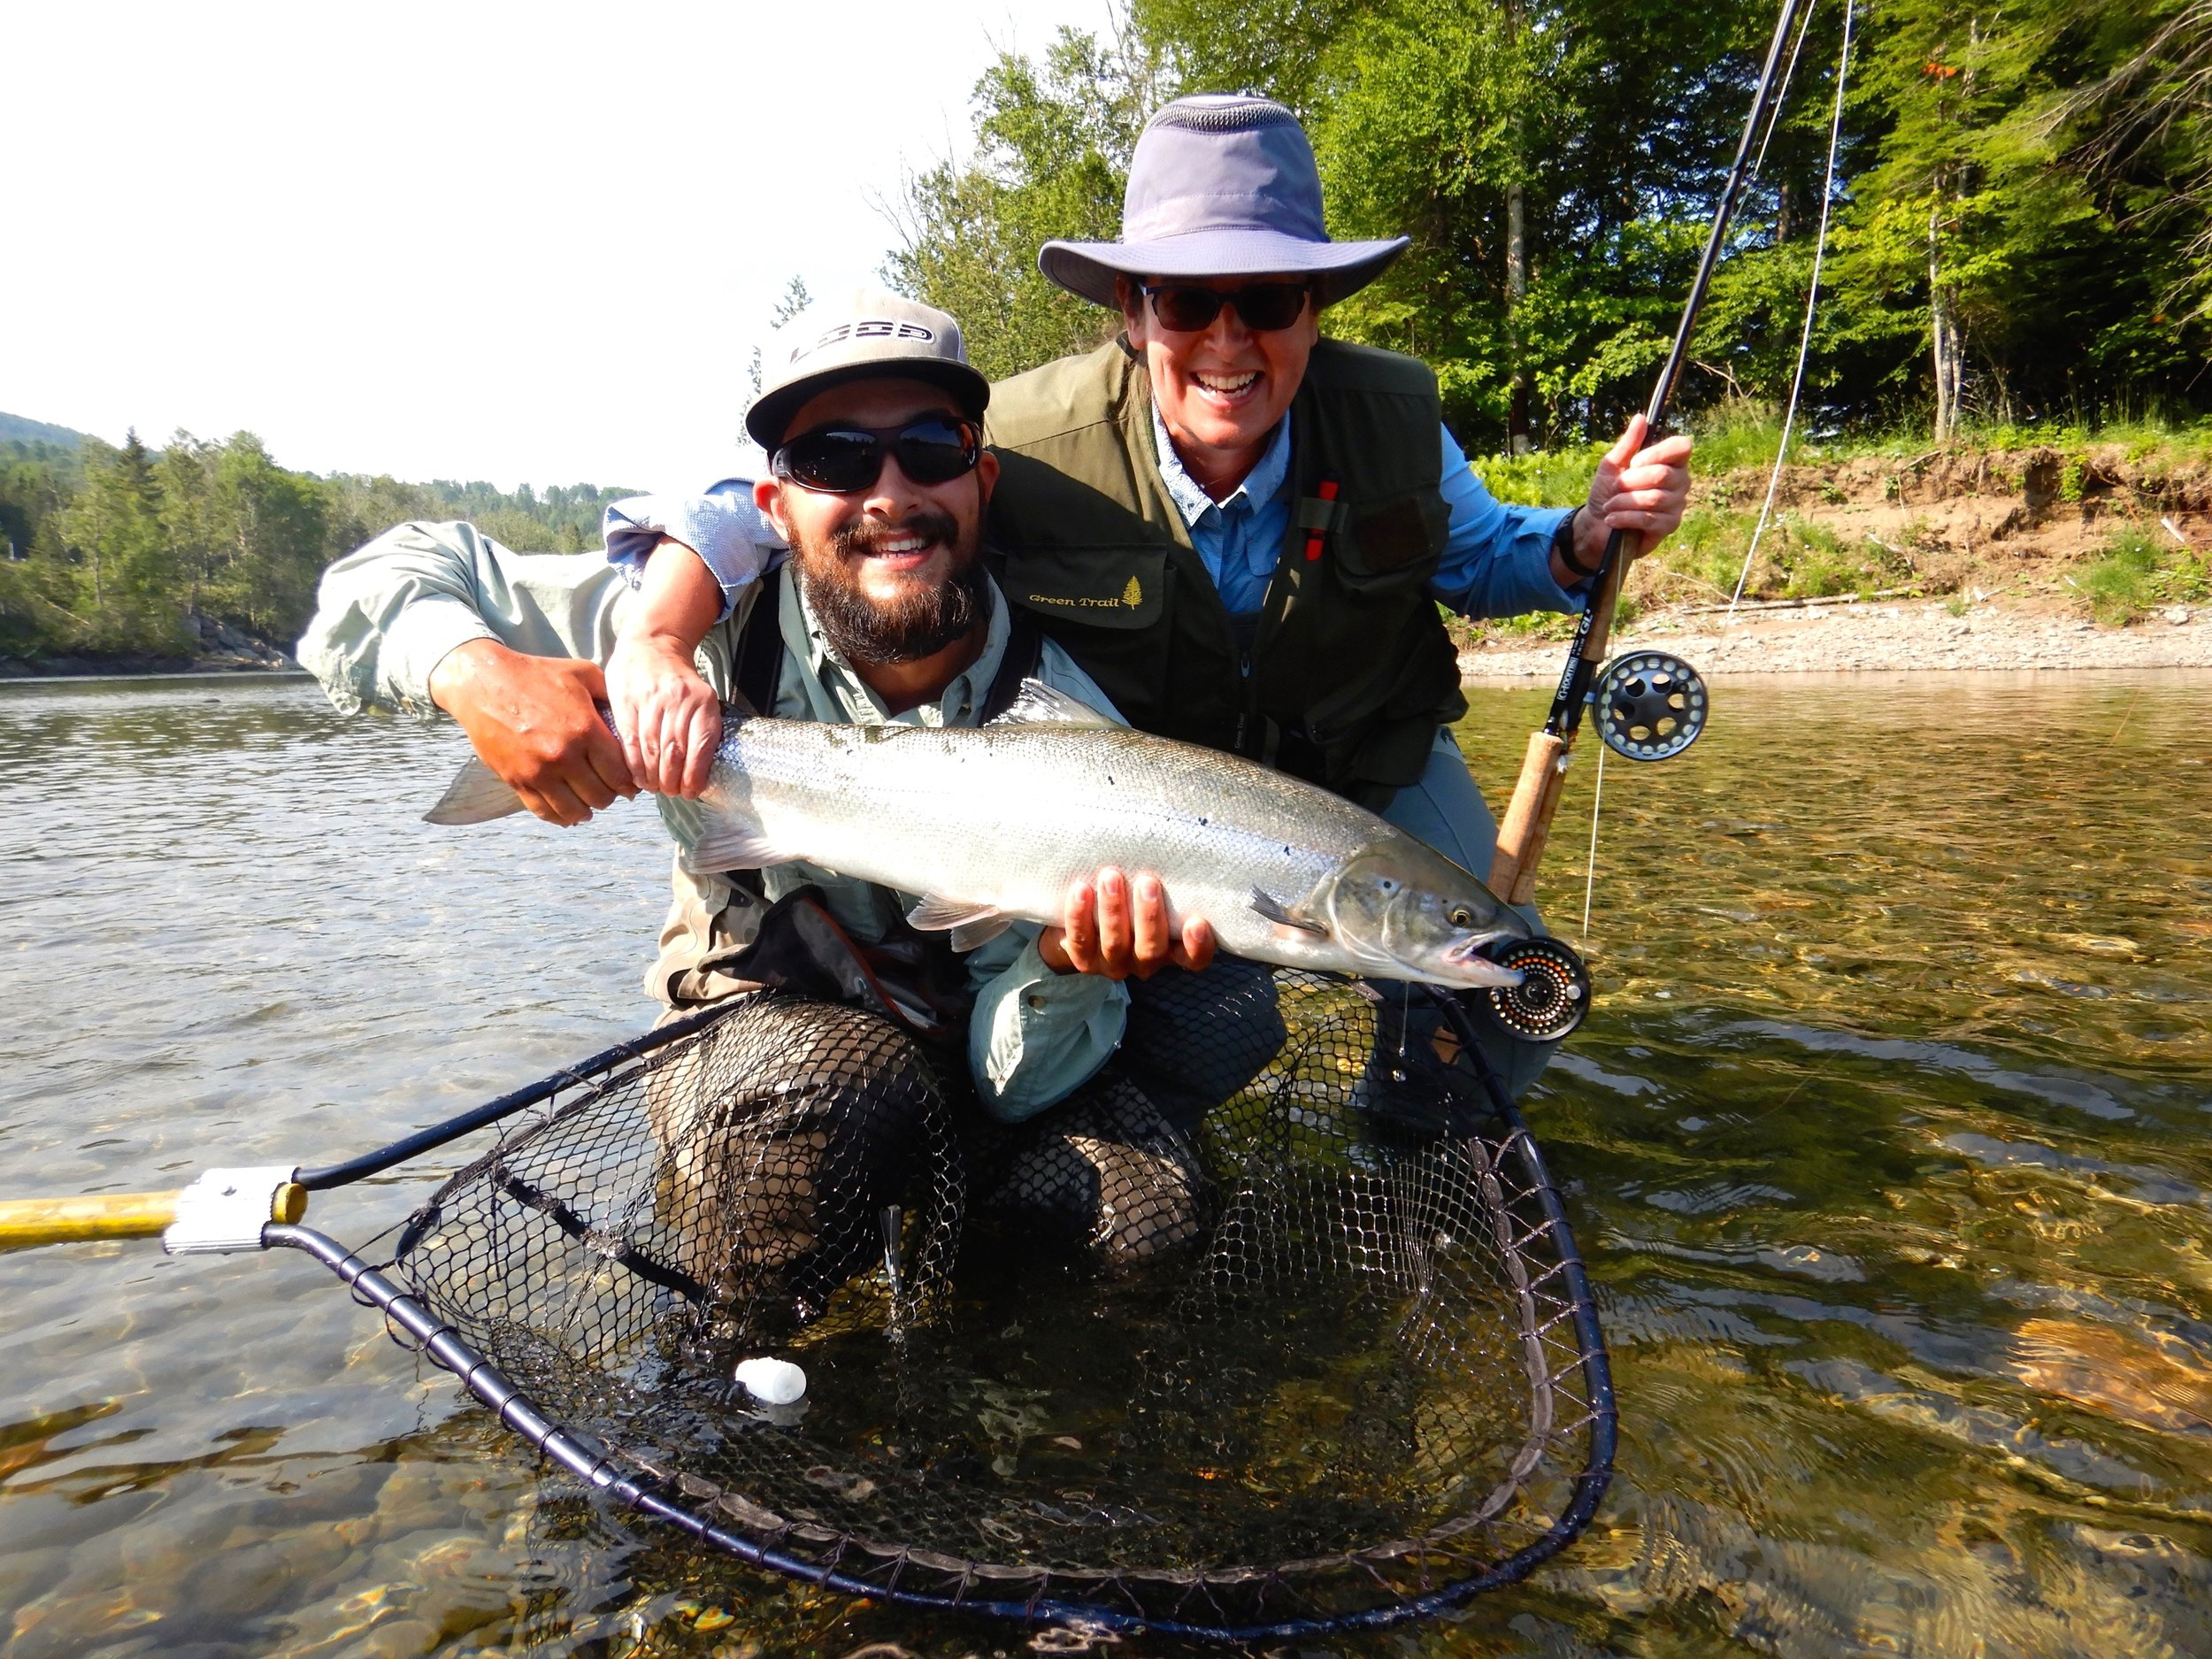 This was Marie France Langlois's first time salmon fishing, the first day she landed three!!! here she is with Salmon Lodge guide Clement Bernier. Way to go Marie France and Clement!